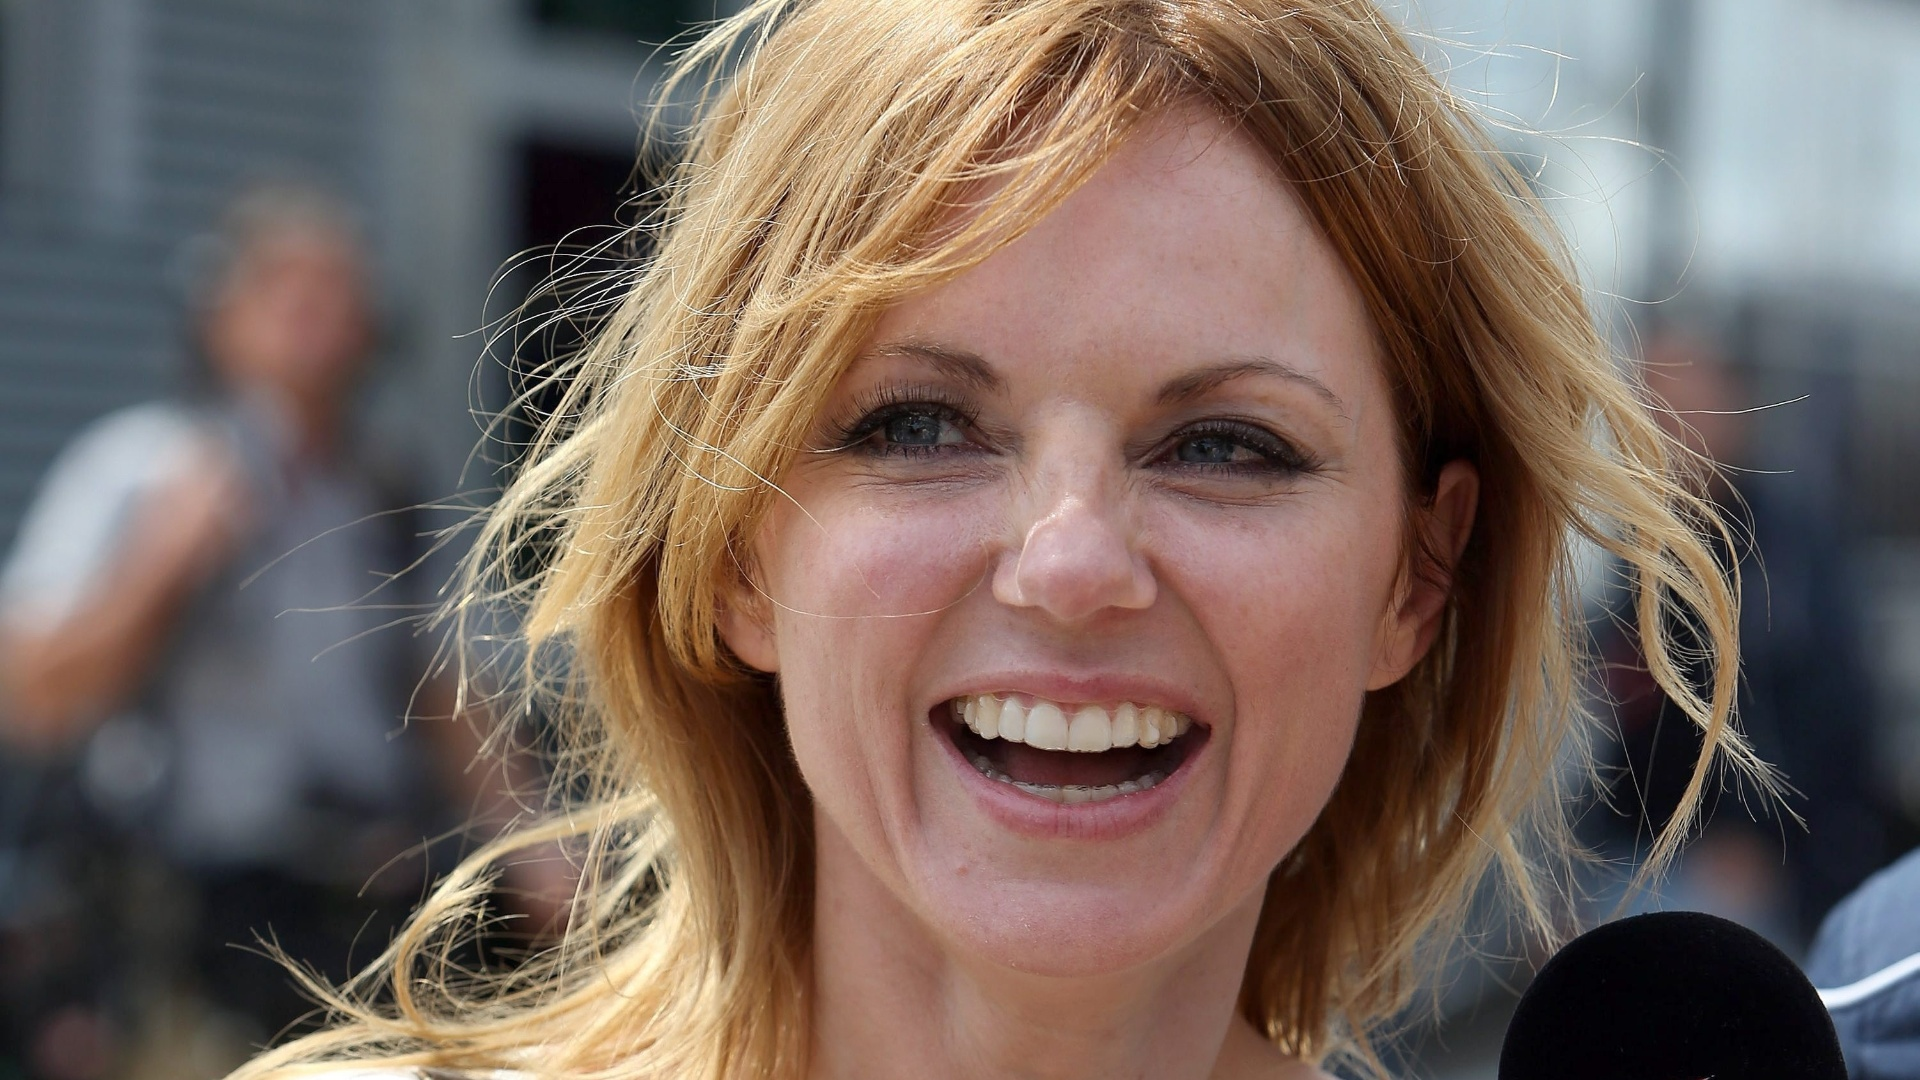 geri halliwell dating 2013 The spice girls 20 years later: geri halliwell a reality talent show which she has been appearing in since 2013 and a presenter for lip sync battle uk.